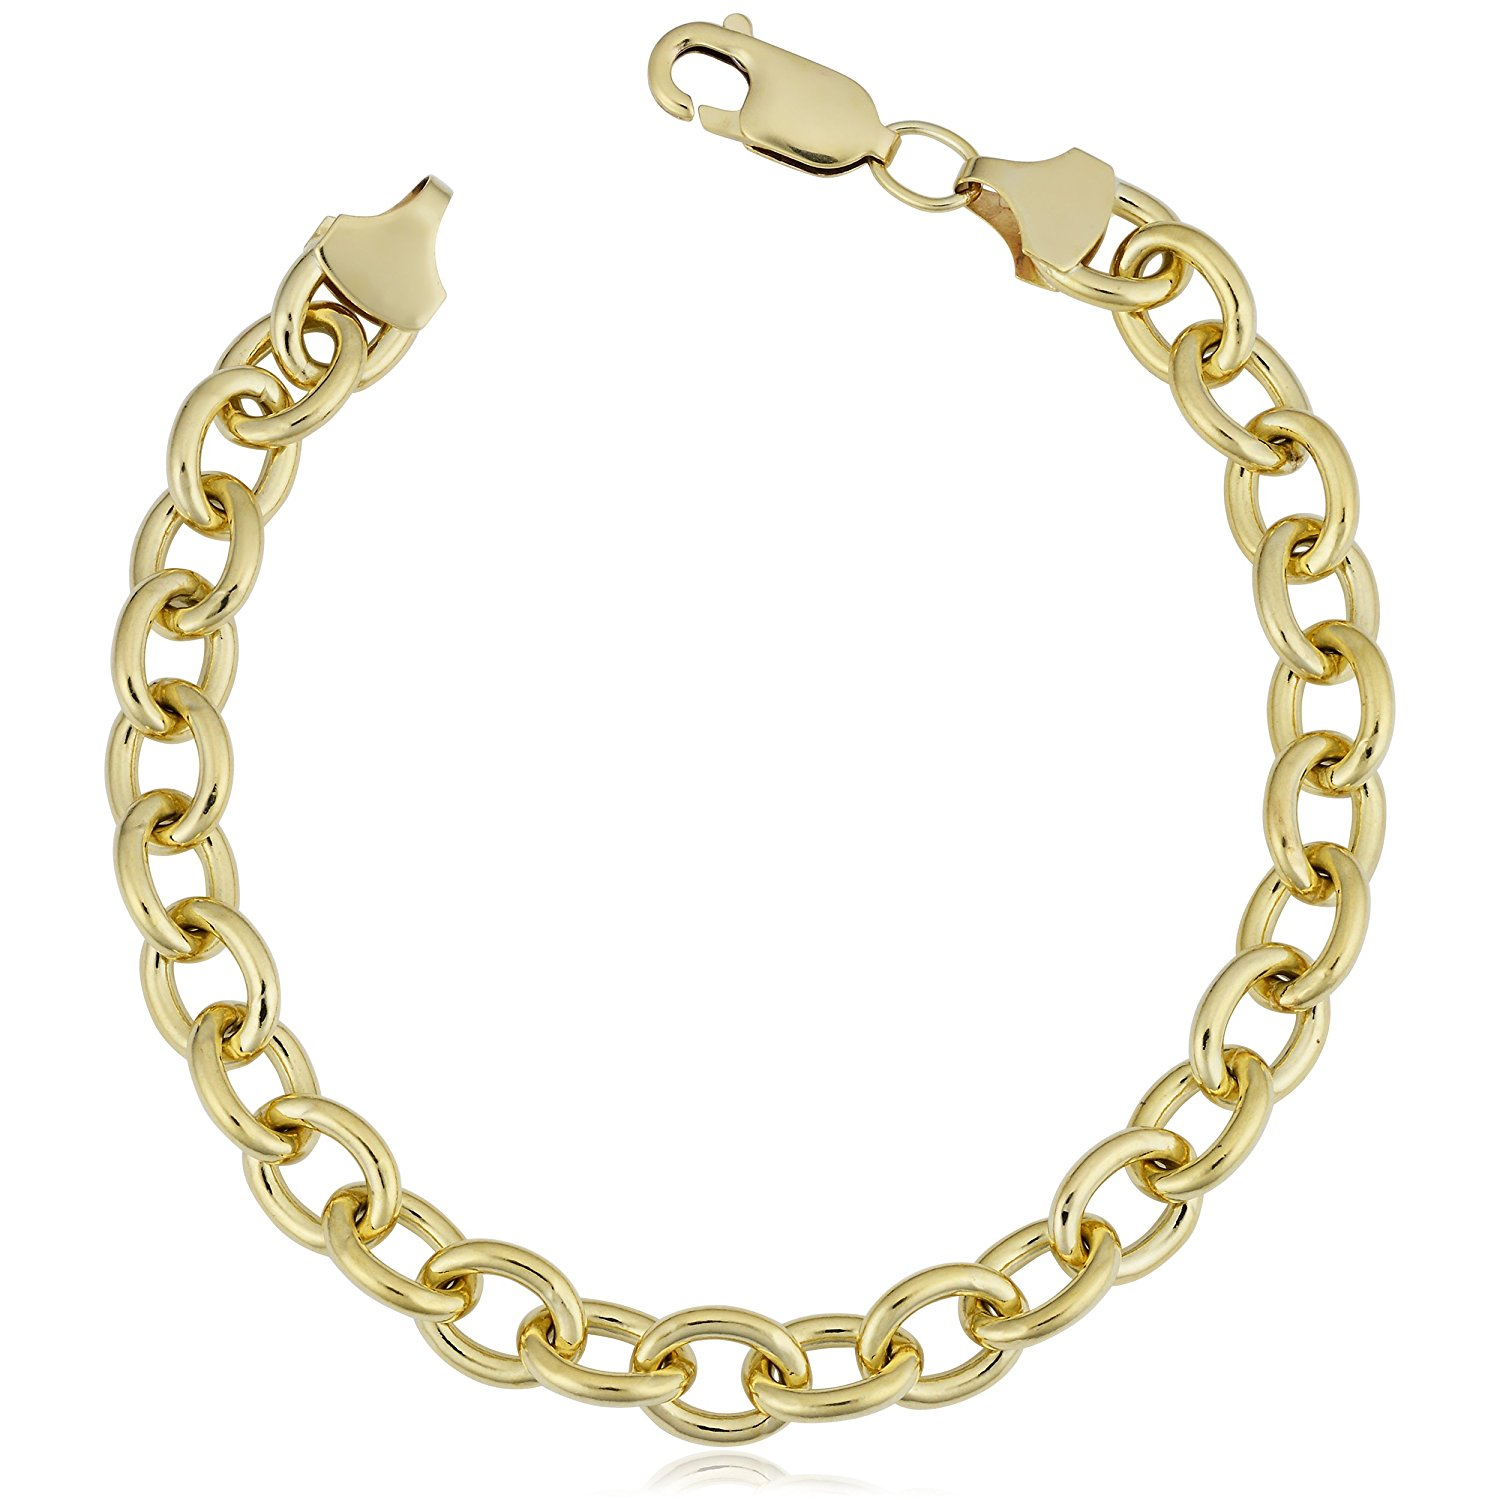 14K Yellow Gold Filled Rolo Chain Bracelet, 7.6mm, 8.5″